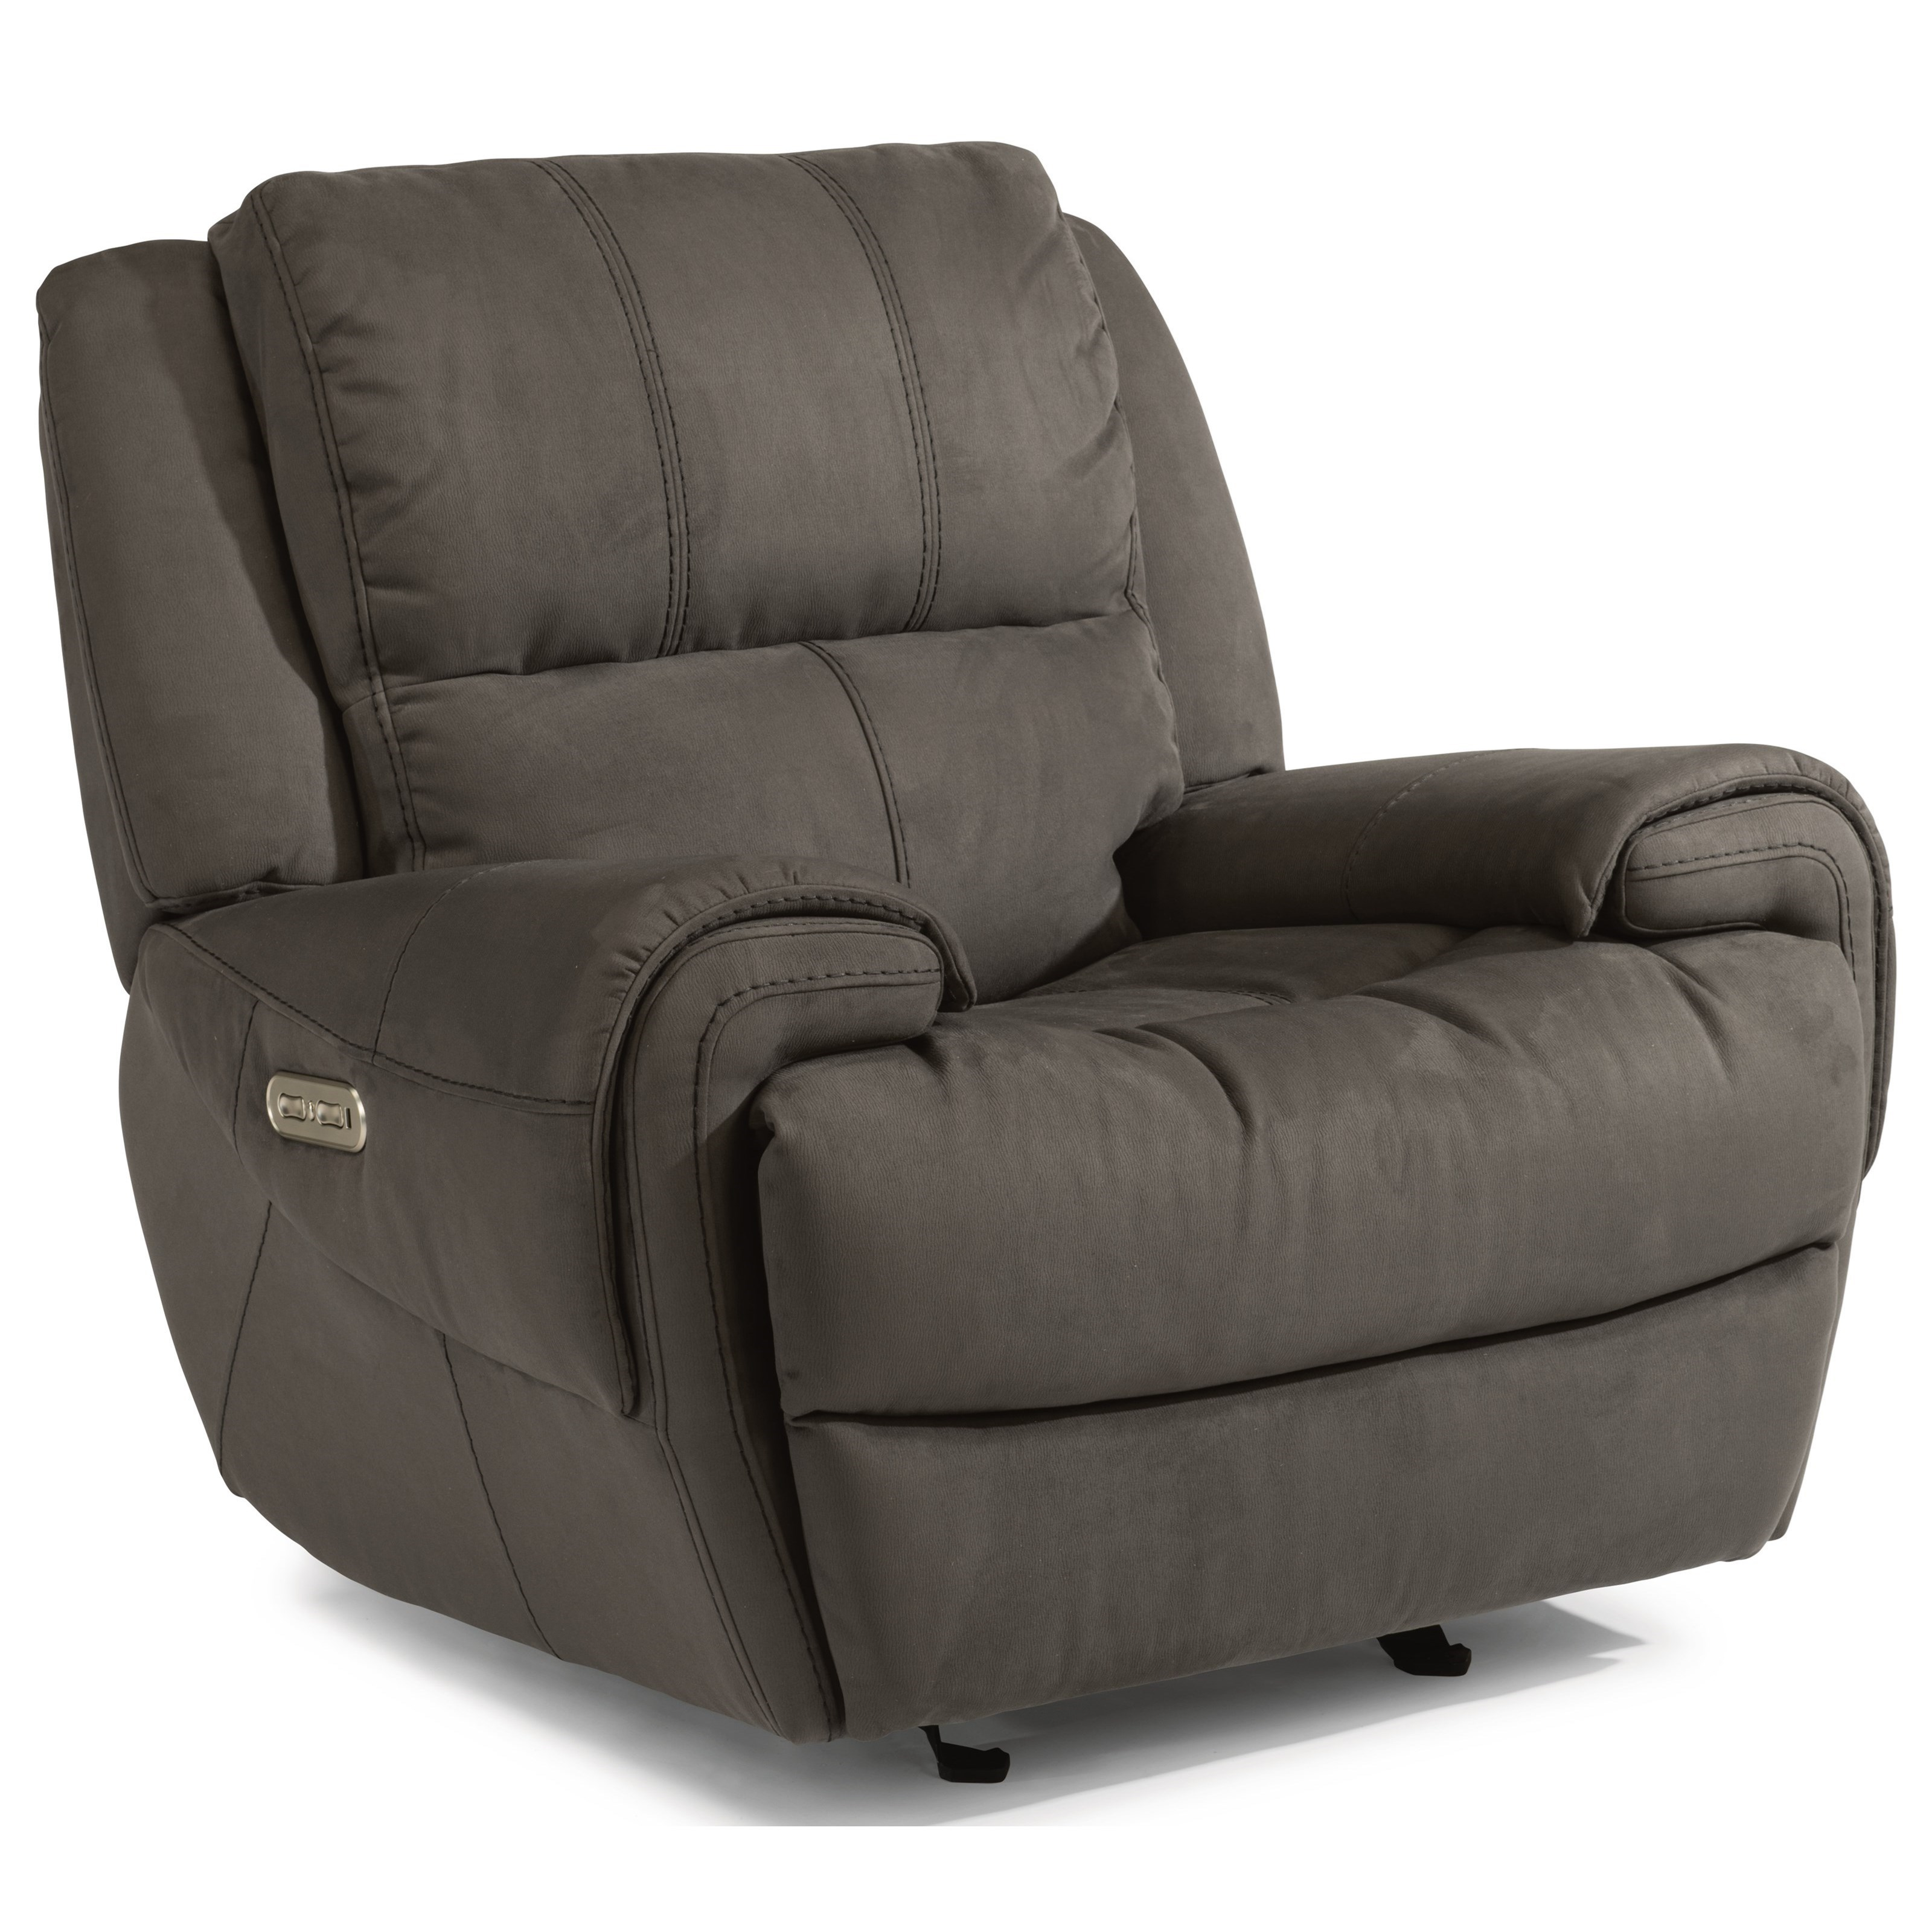 Flexsteel Latitudes-Nance Power Gliding Recliner with Power Headrest - Item Number: 1178-54PH-363-02